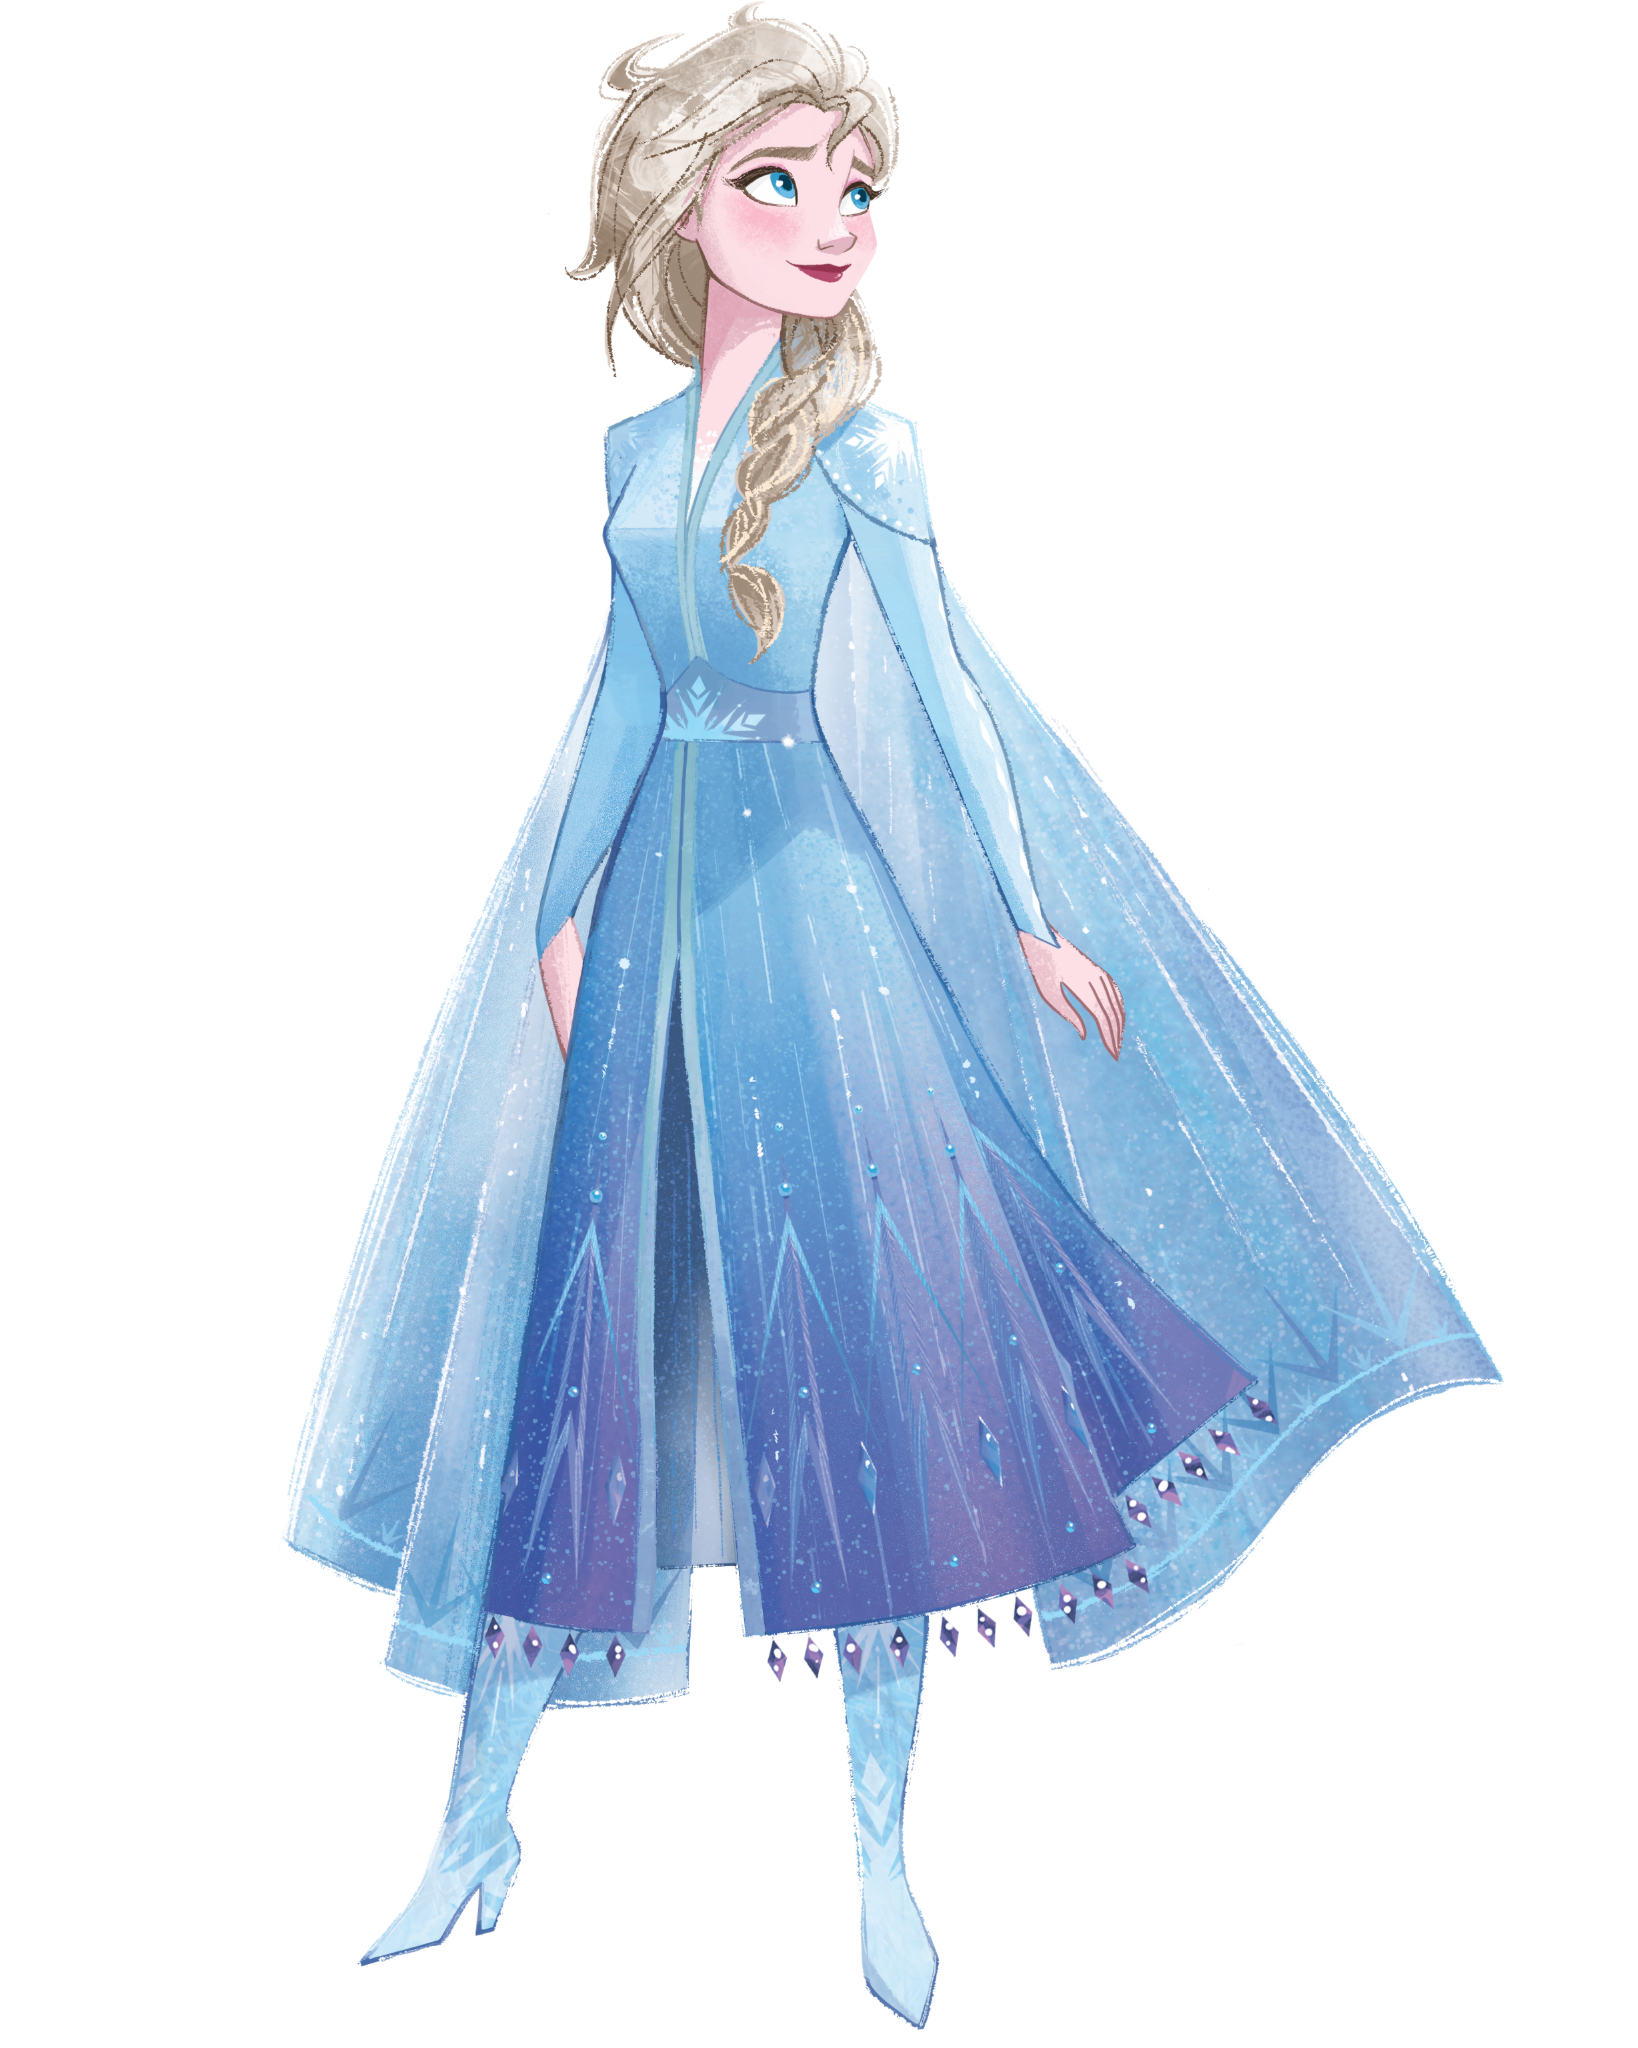 Disney Frozen 2 clipart in png format with a clear.